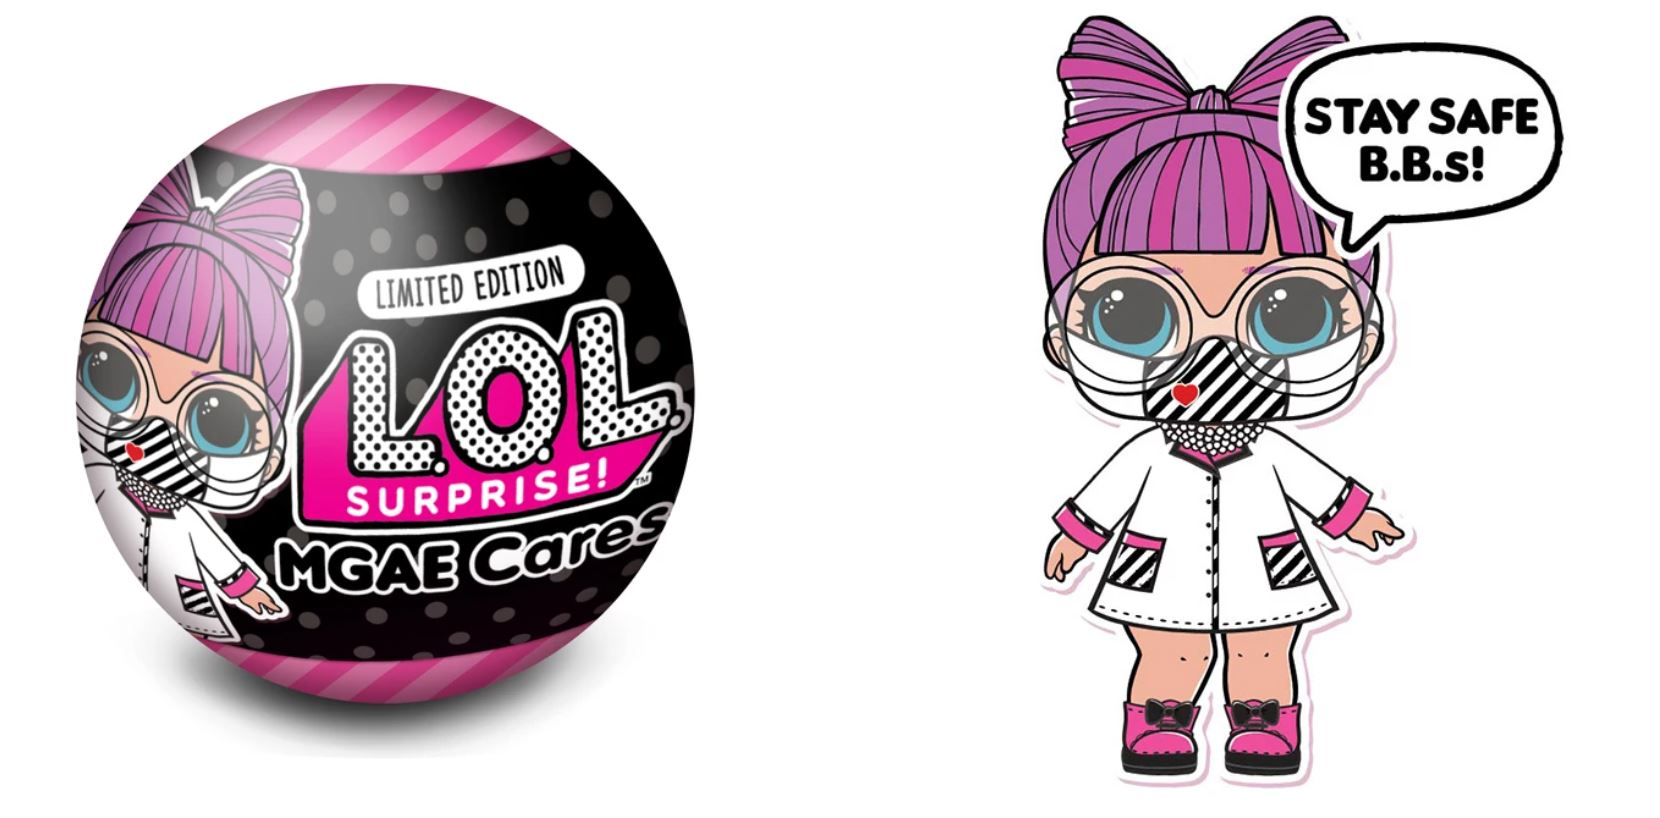 Lol Surprise Mgae Cares Frontline Doll Limited Edition Where To